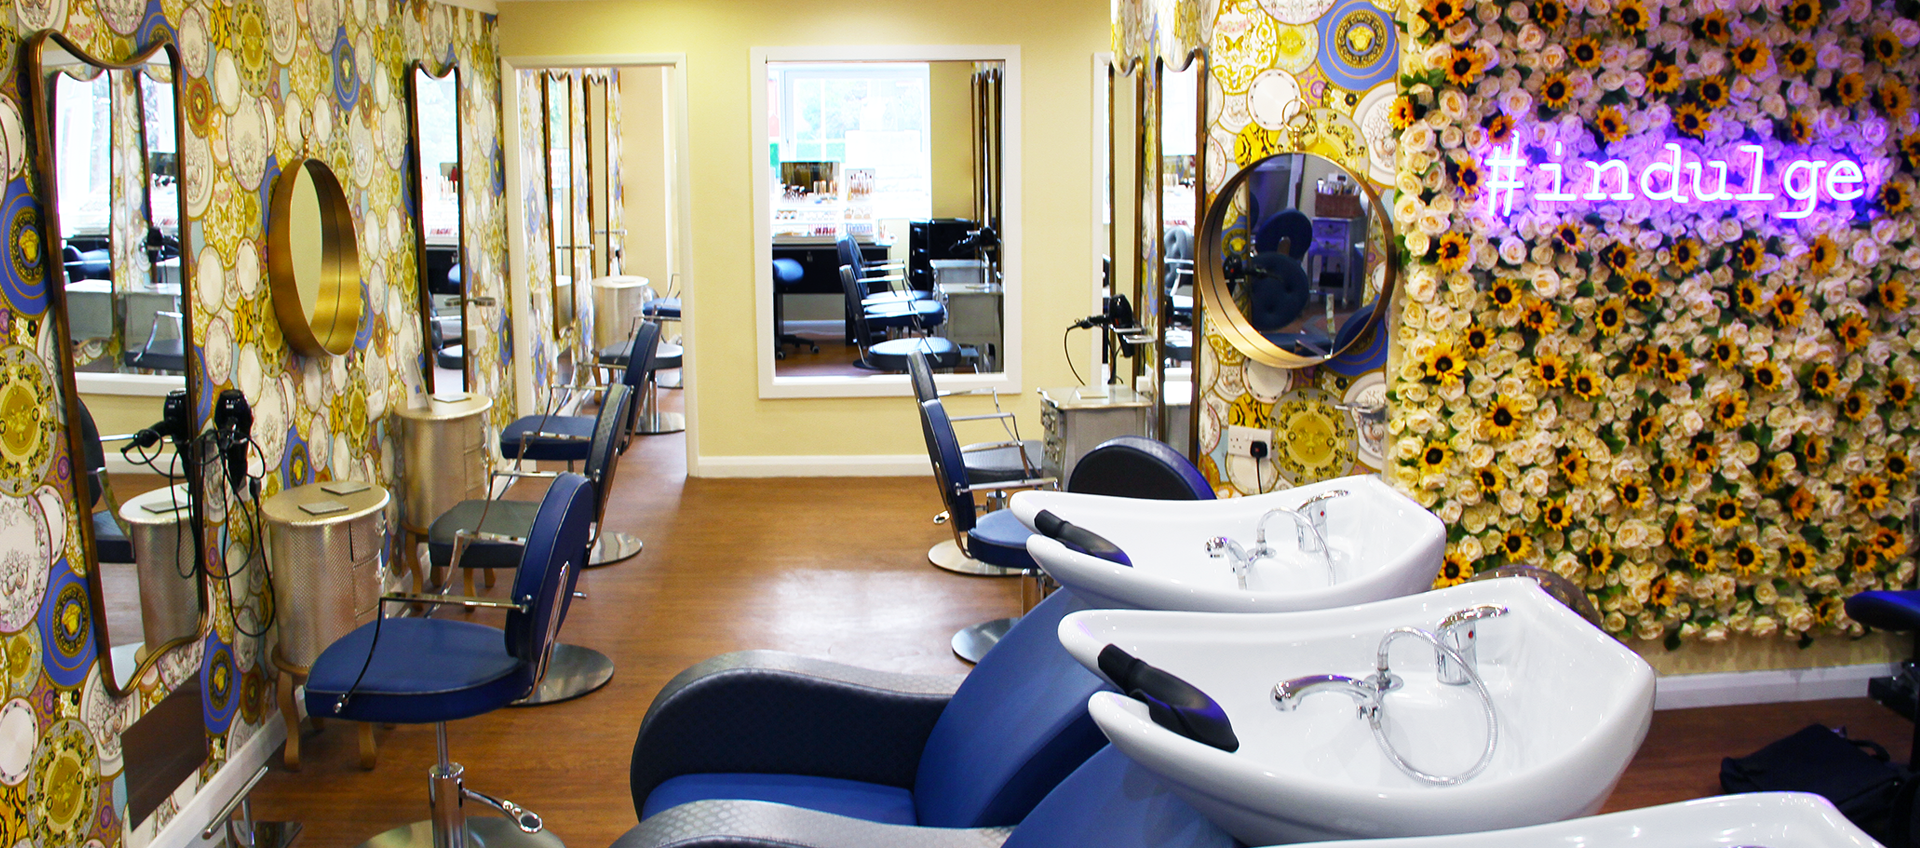 Indulge Hairdressing Inside Hair Salon Image Seven